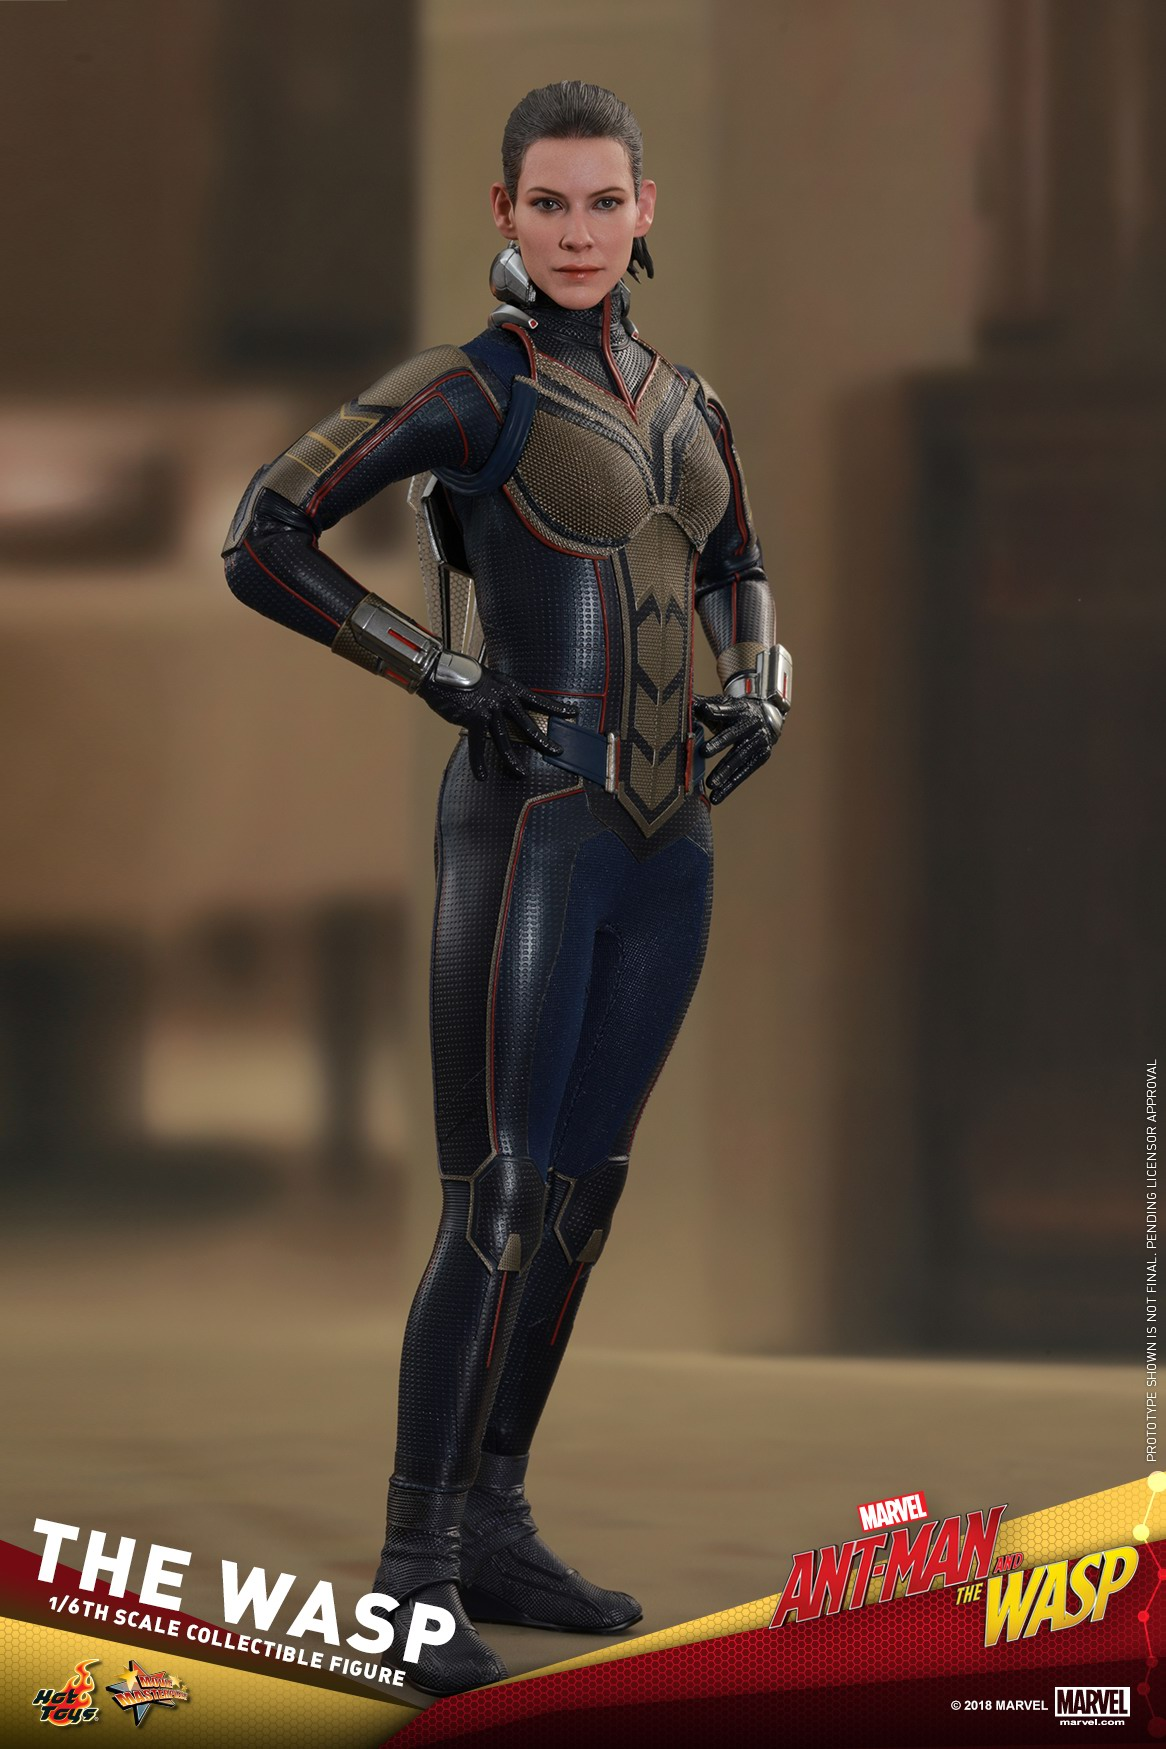 Hot-Toys-Ant-Man-and-The-Wasp-The-Wasp-Collectible-Figure_PR26.jpg